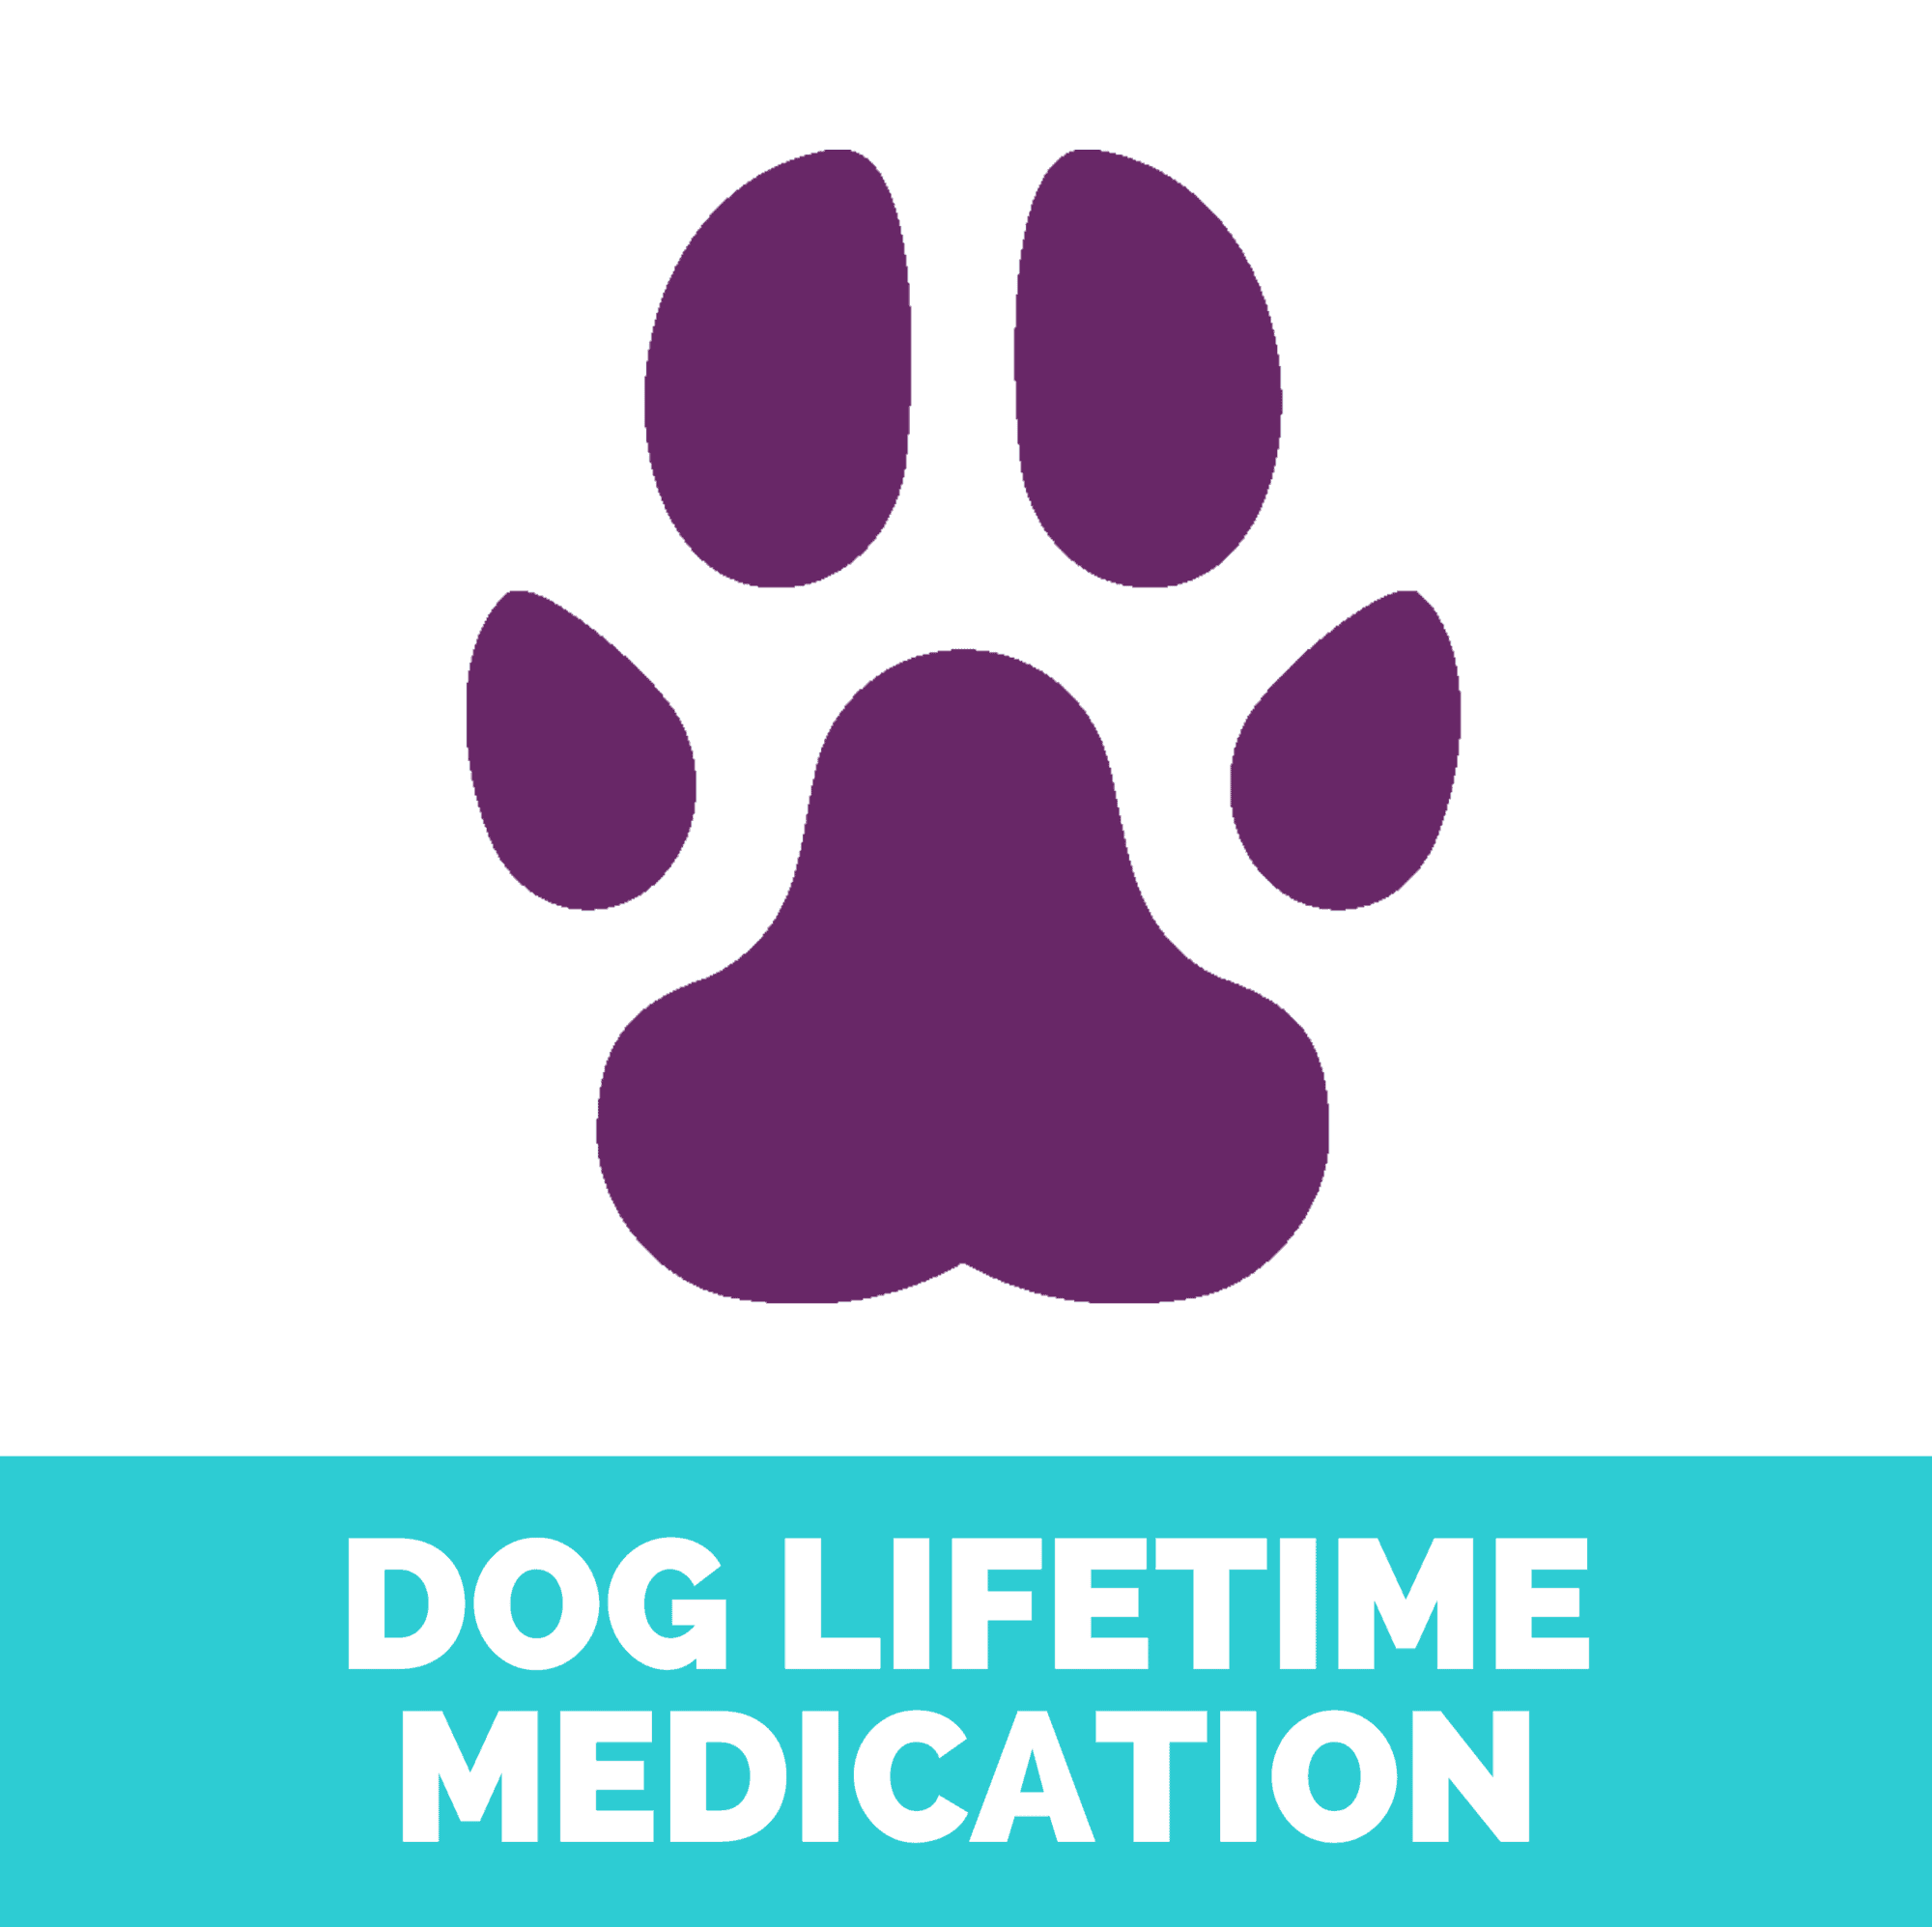 Dog lifetime medication